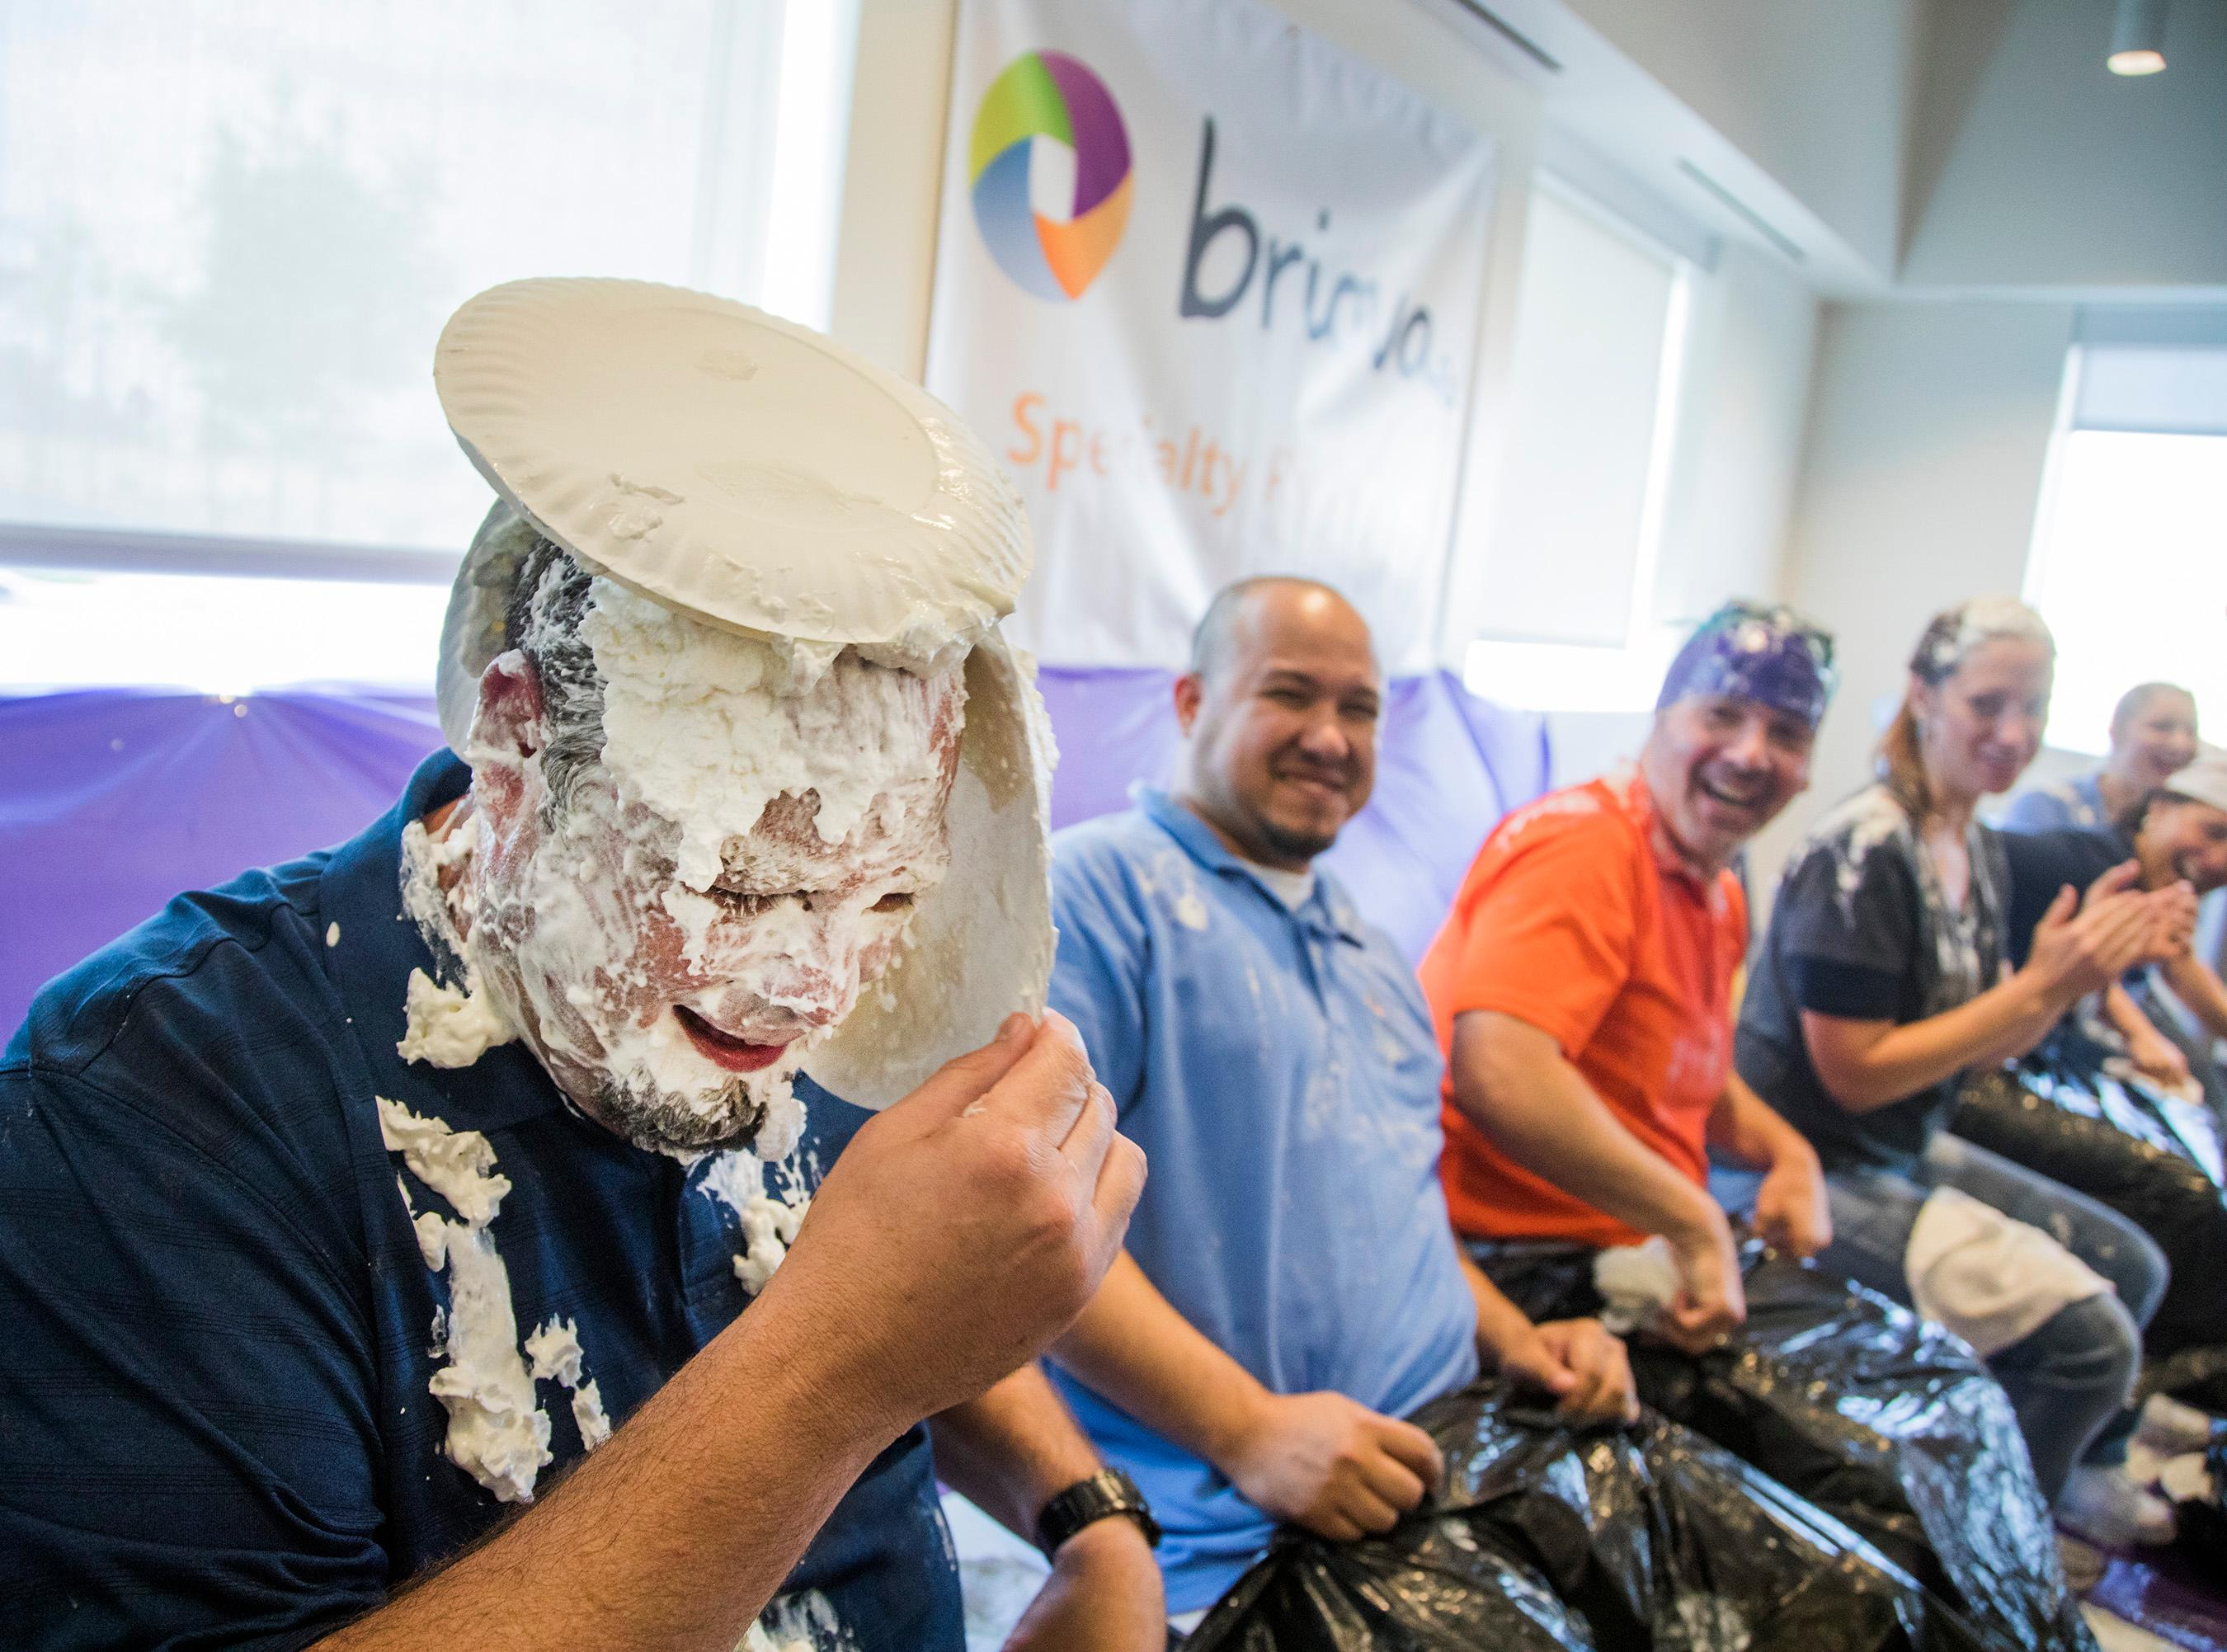 Optum leader Doug Larson gets pied in the face Wednesday, July 26, 2017, by employees to raise funds for the Southern Nevada Chapter of the Leukemia & Lymphoma Society and recruit people to participate in its 2017 Light the Night walk in November. (Photo courtesy of Jeff Scheid)